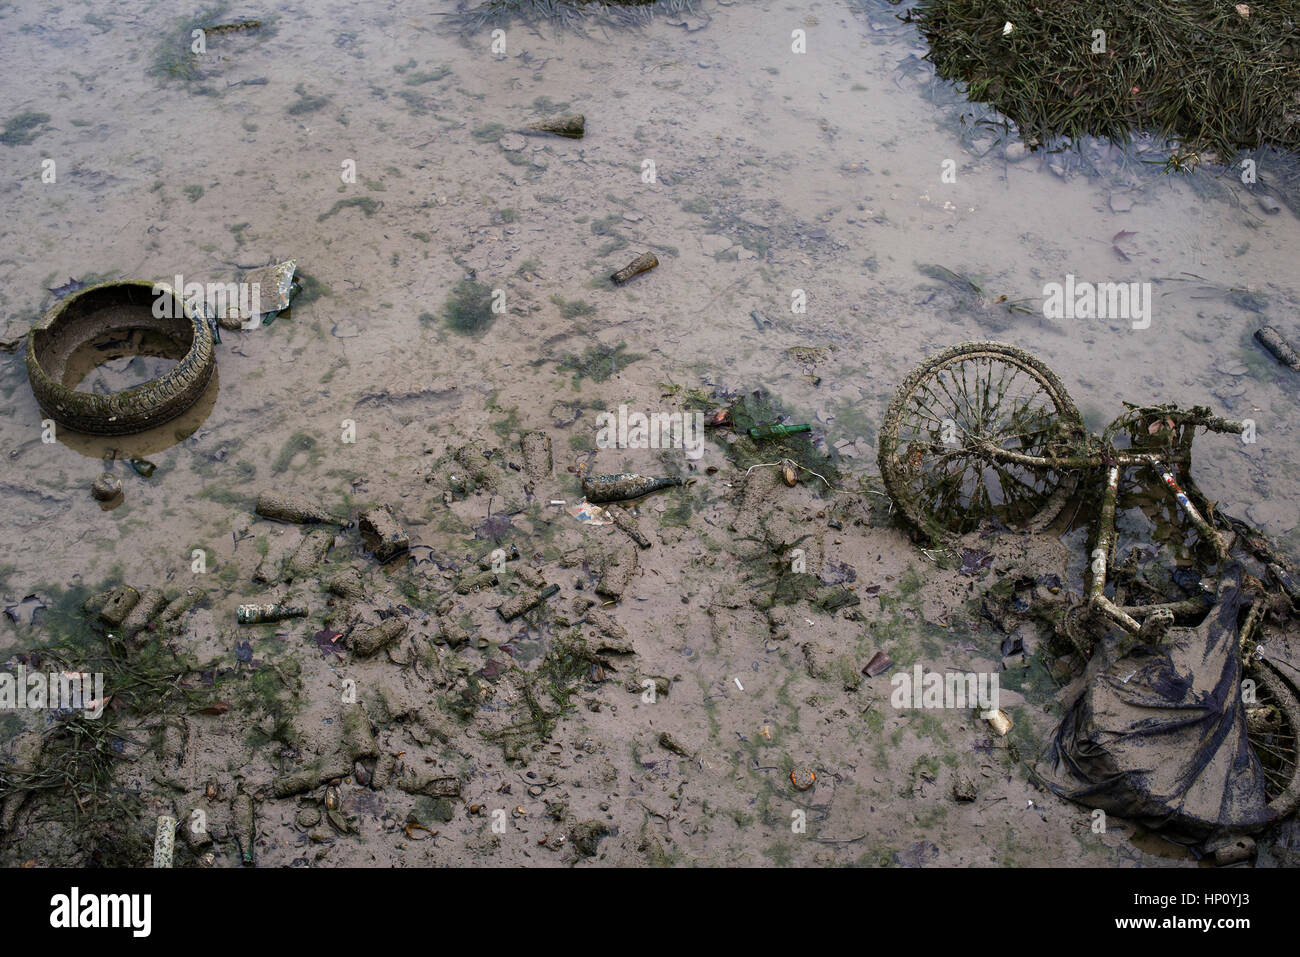 Polluted stream - Stock Image